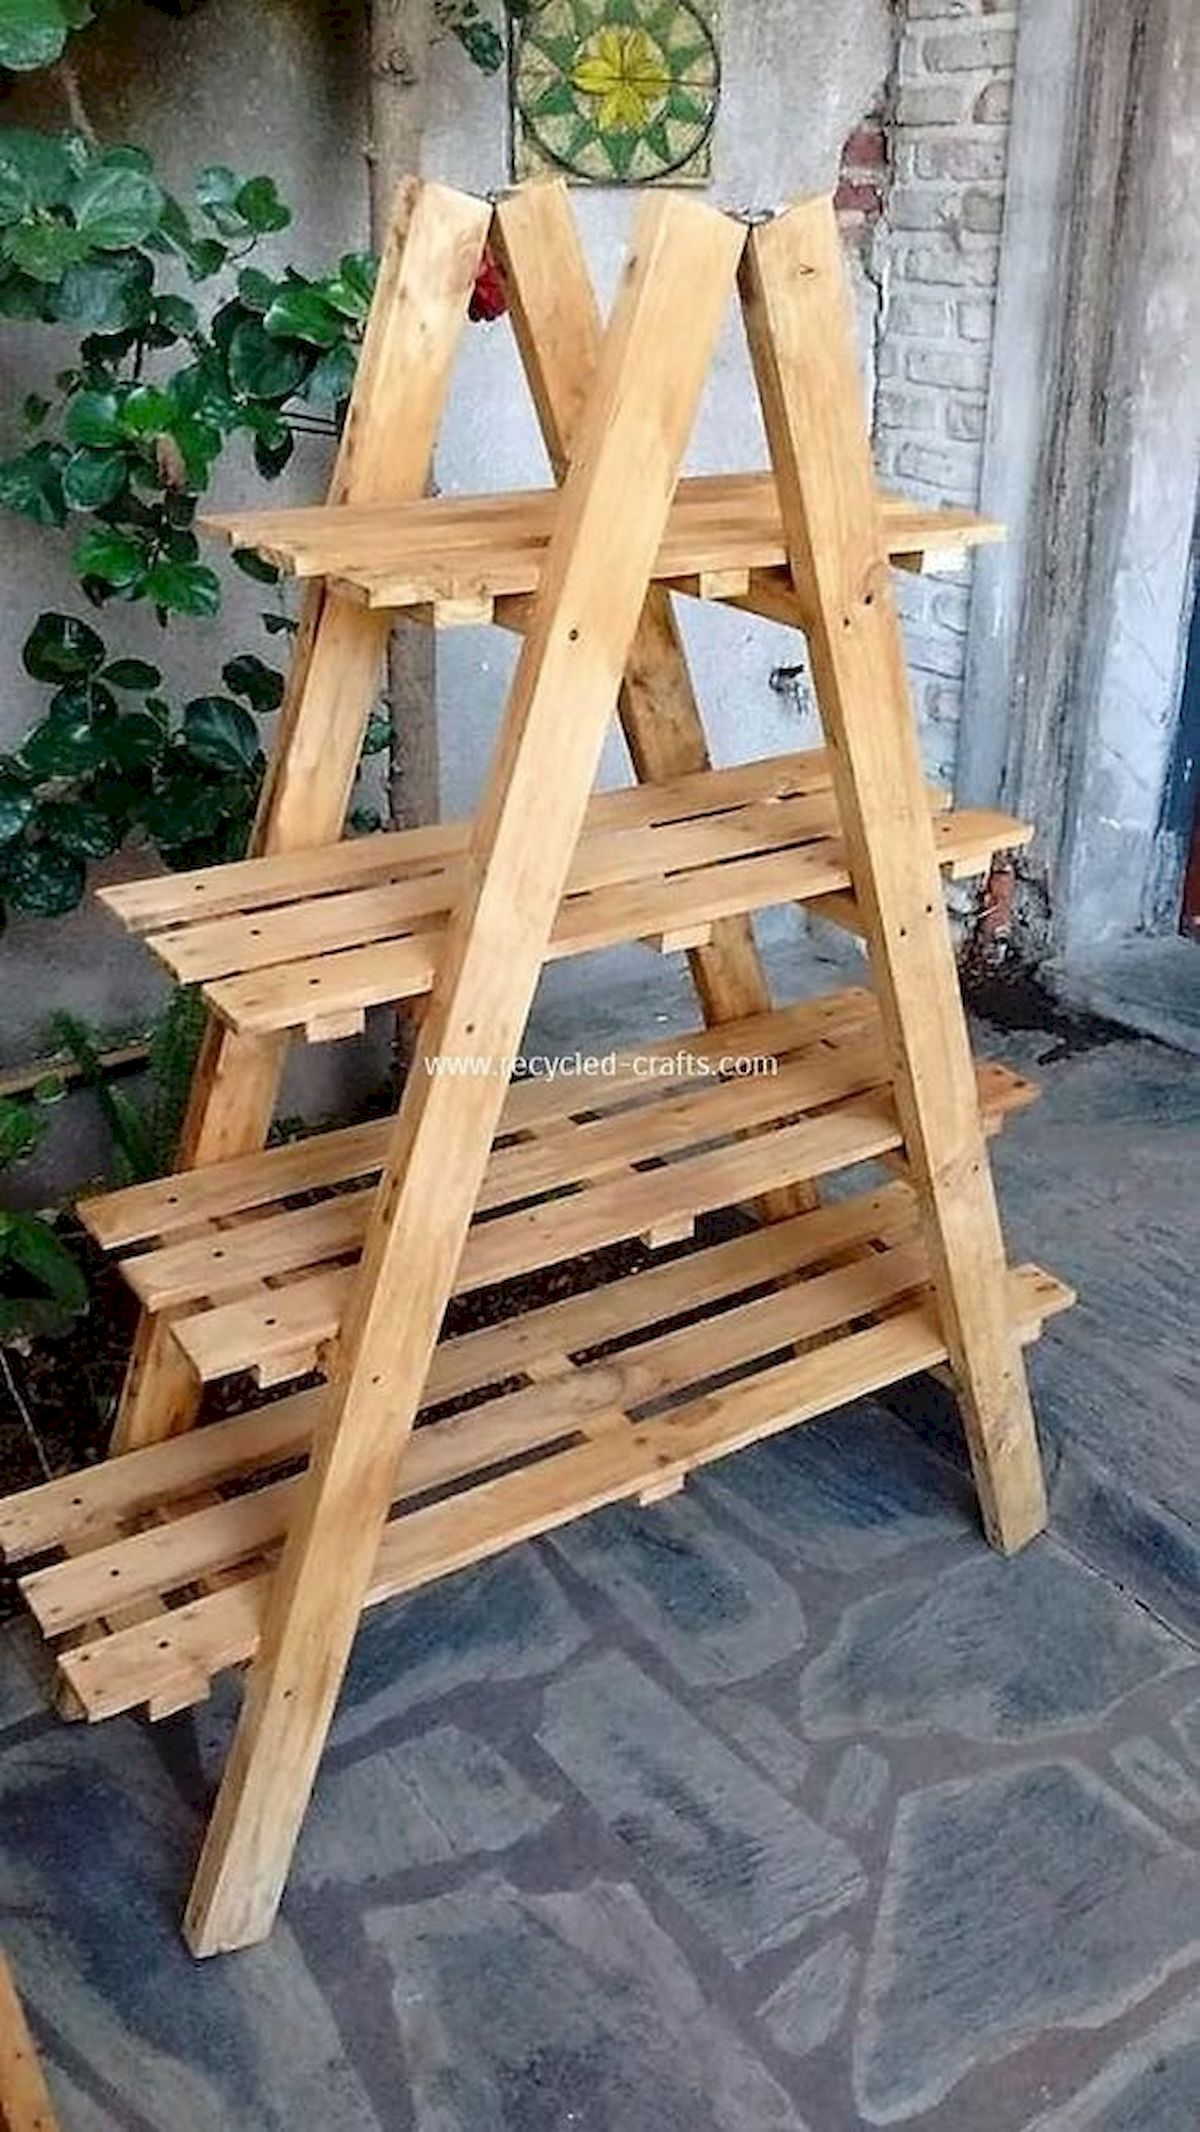 45 Awesome Furniture Ideas for Small House With Wood Project Ideas (4)